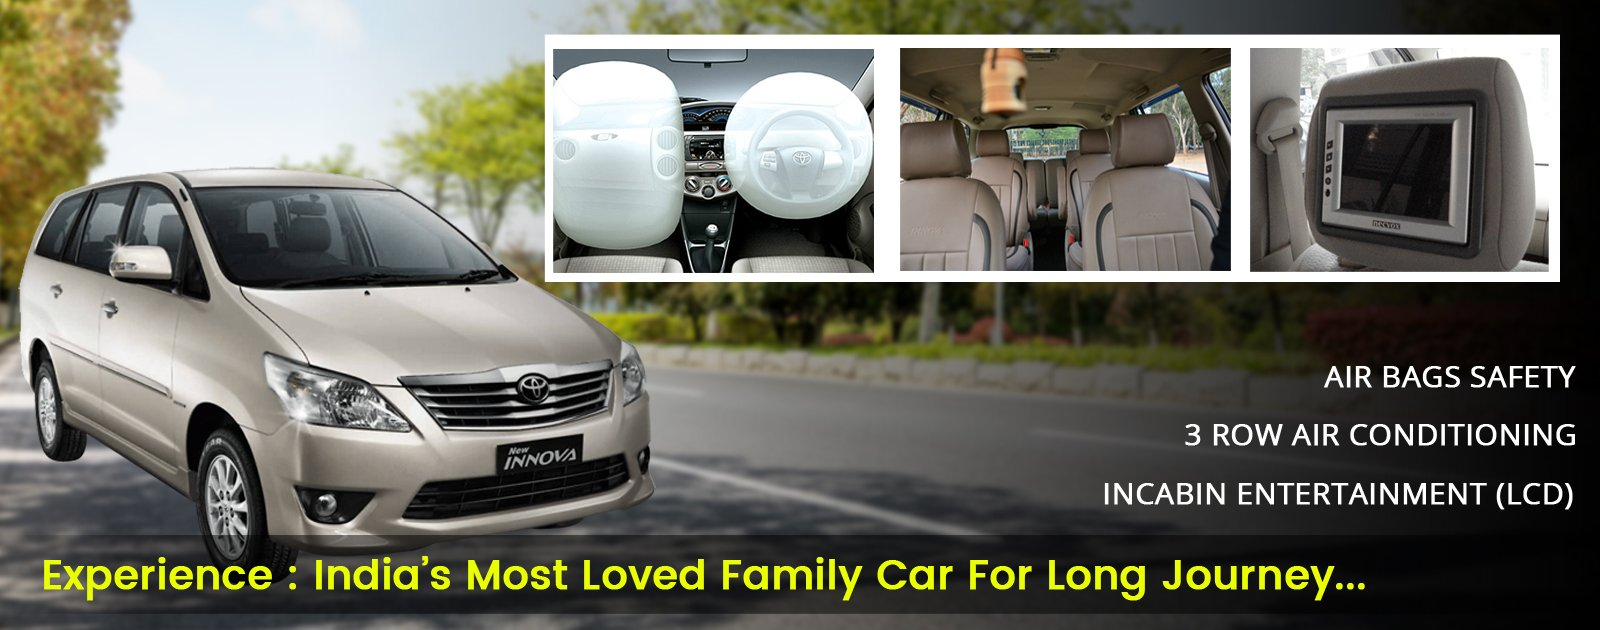 innova car on rent in new delhi, innova cab booking, innova for hire in janakpuri